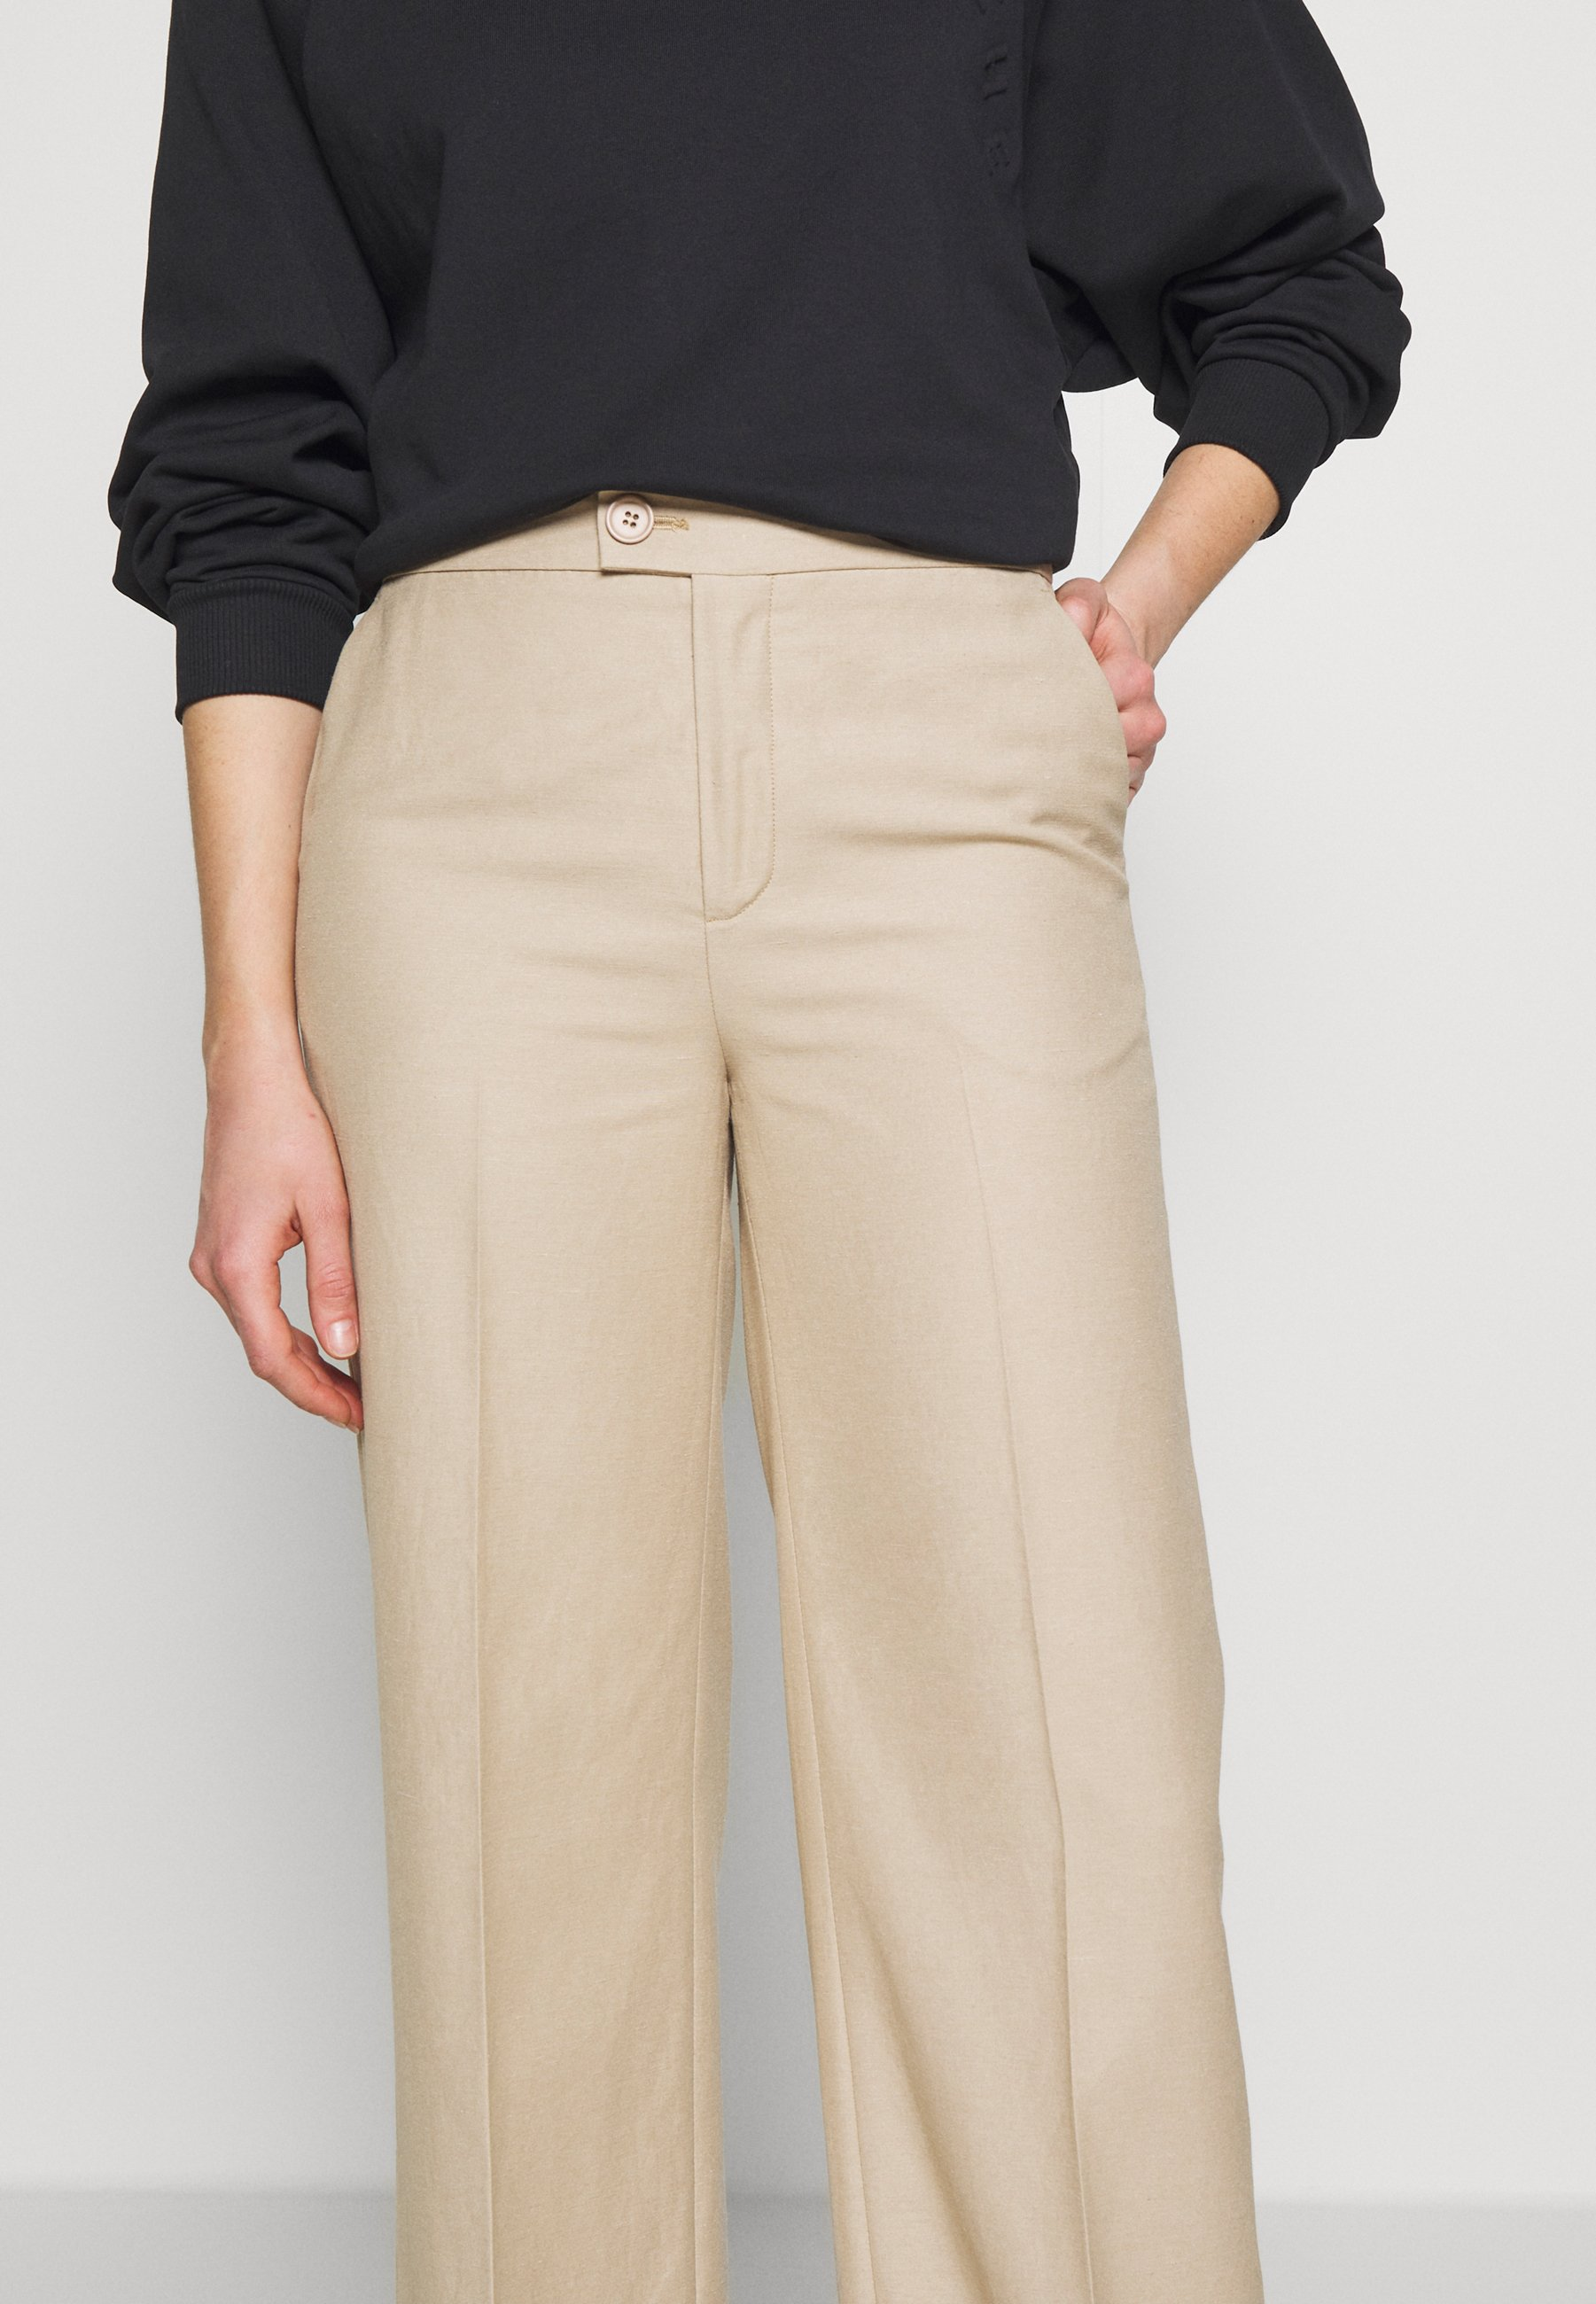 Blanche May Pants - Tygbyxor Lavender Fog